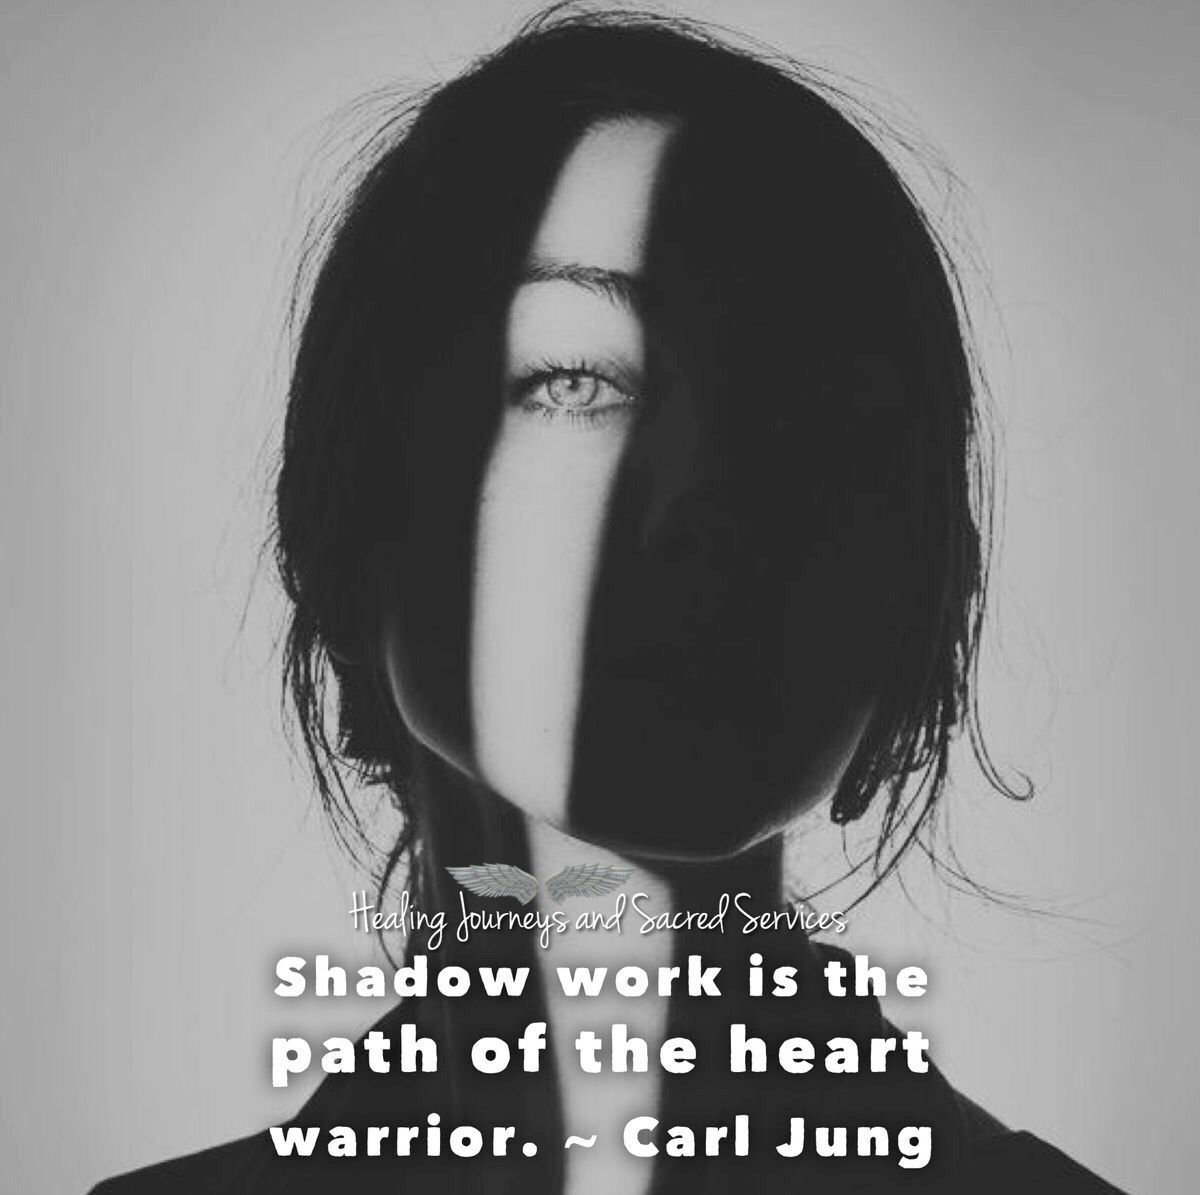 Shadow Work. Visit Healing Journeys and Sacred Services on